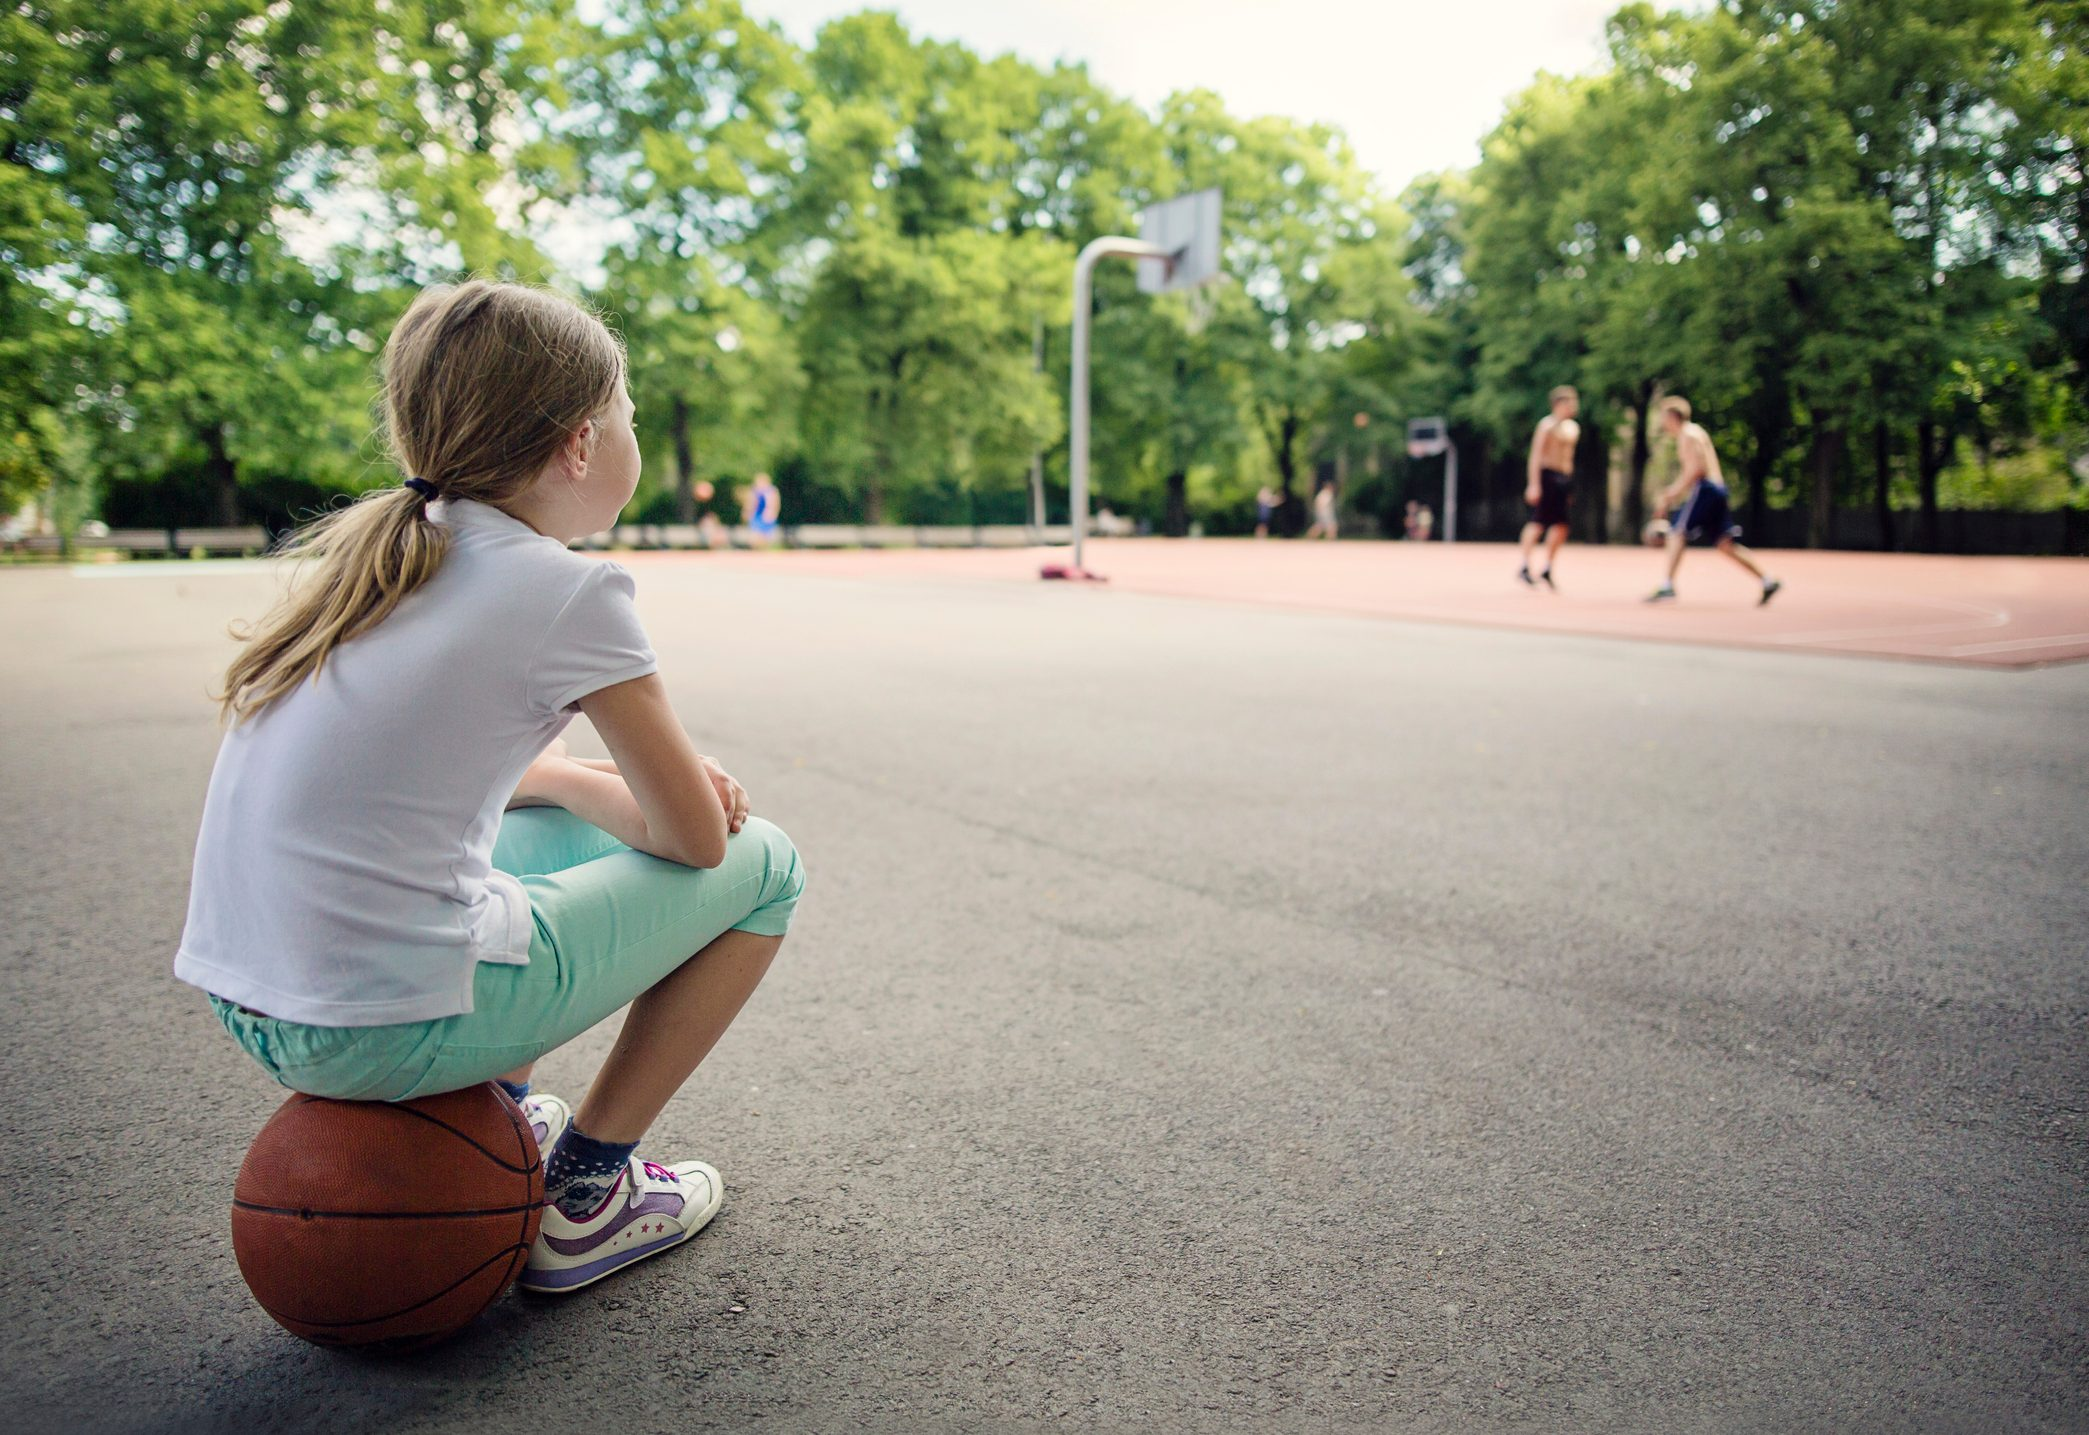 young girl sitting on basketball watching people play